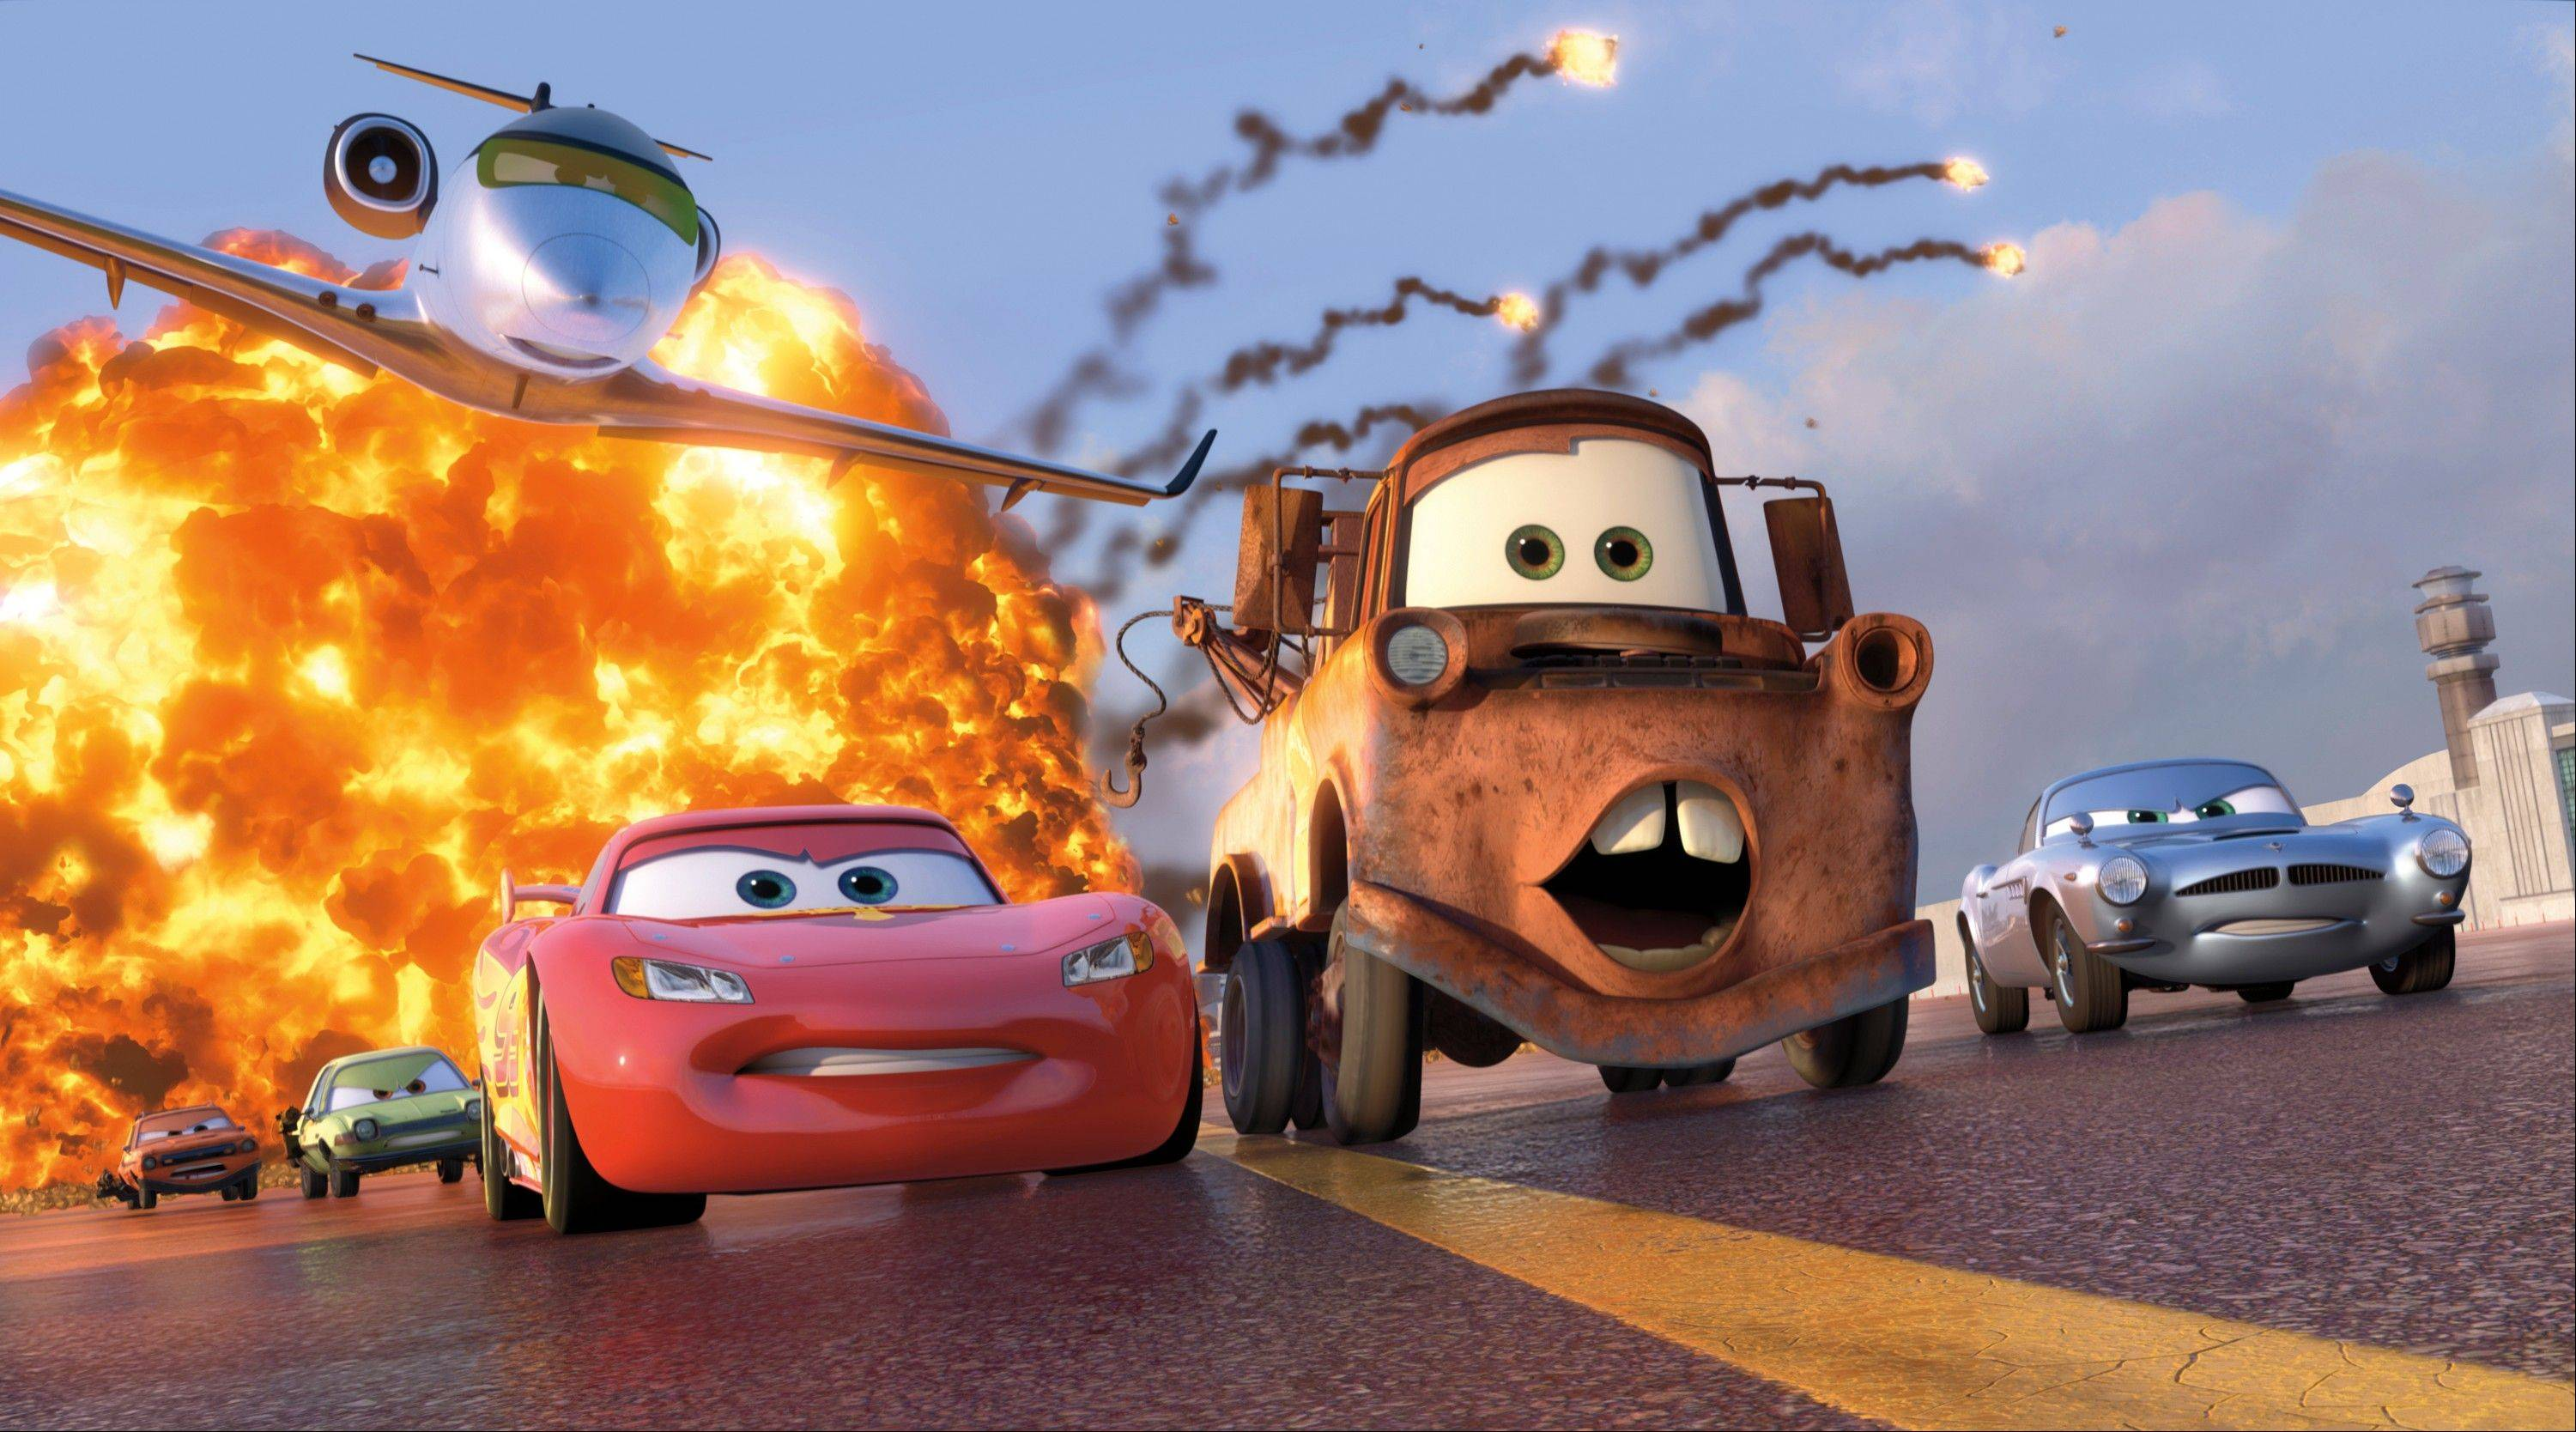 Walt Disney Studios Motion Pictures, distributor of �Cars 2,� is among the companies participating in the online copyright alert system.